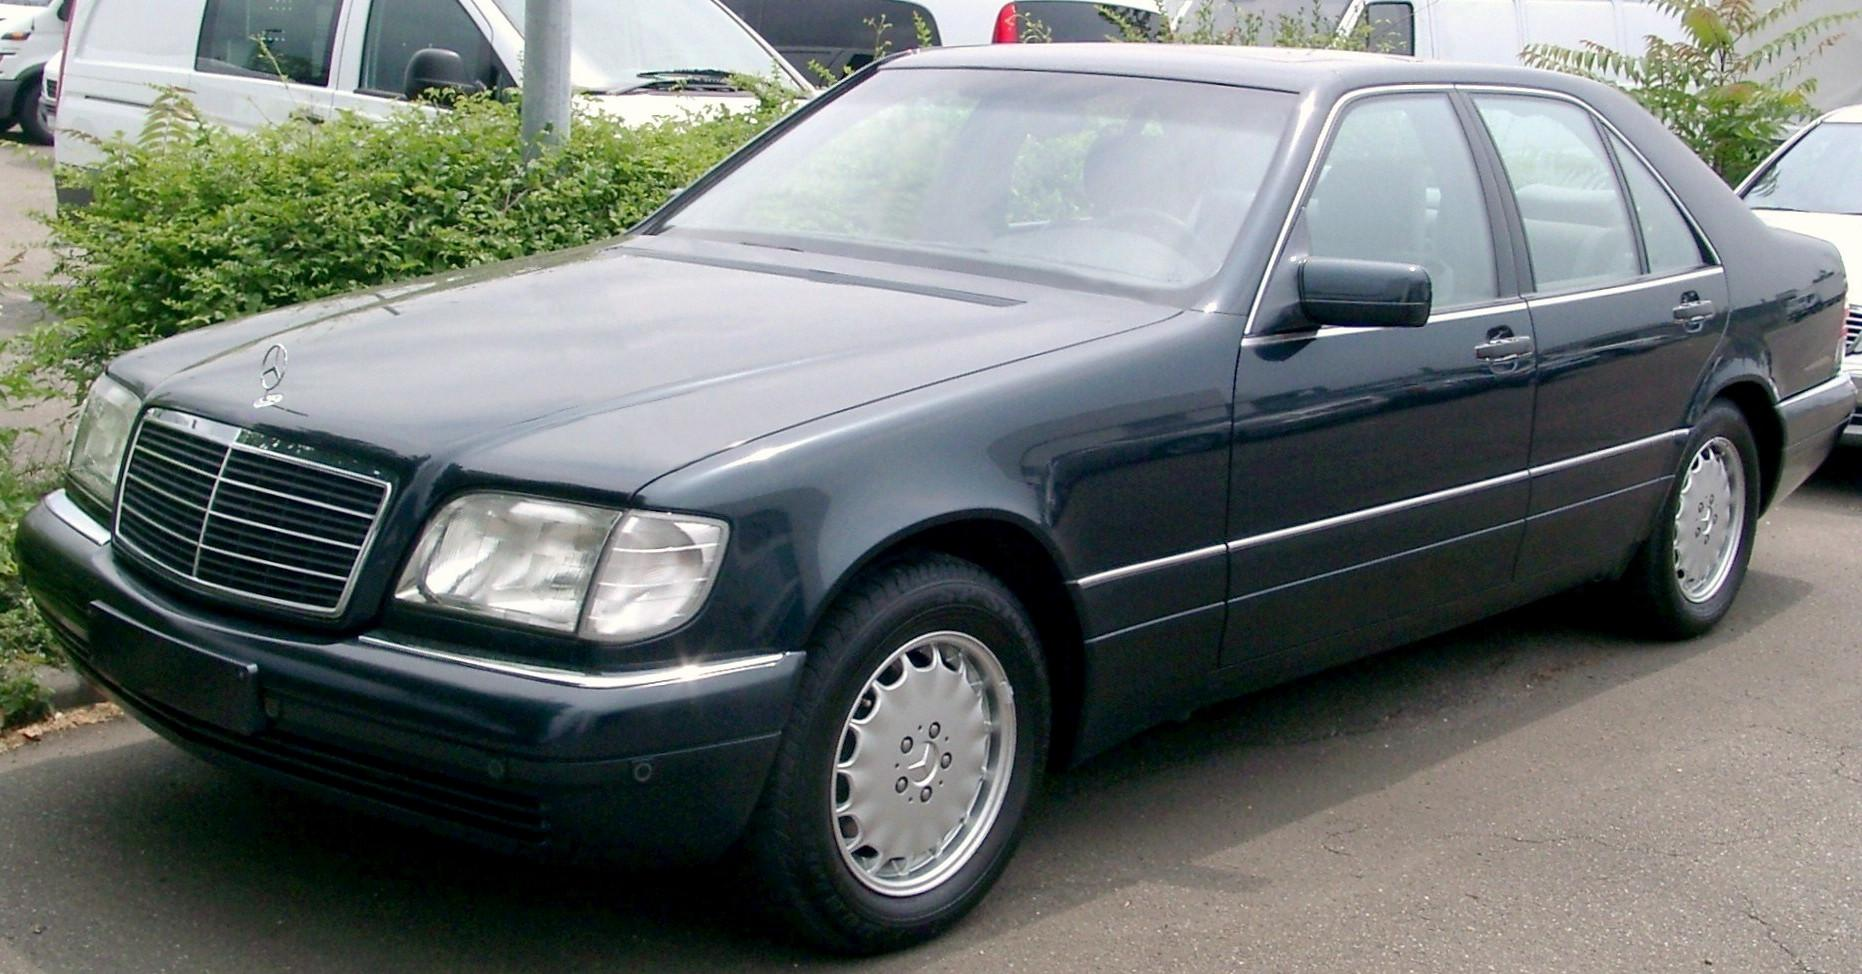 IMCDb.org: 1997 Mercedes-Benz S 300 Turbodiesel [W140] in ...